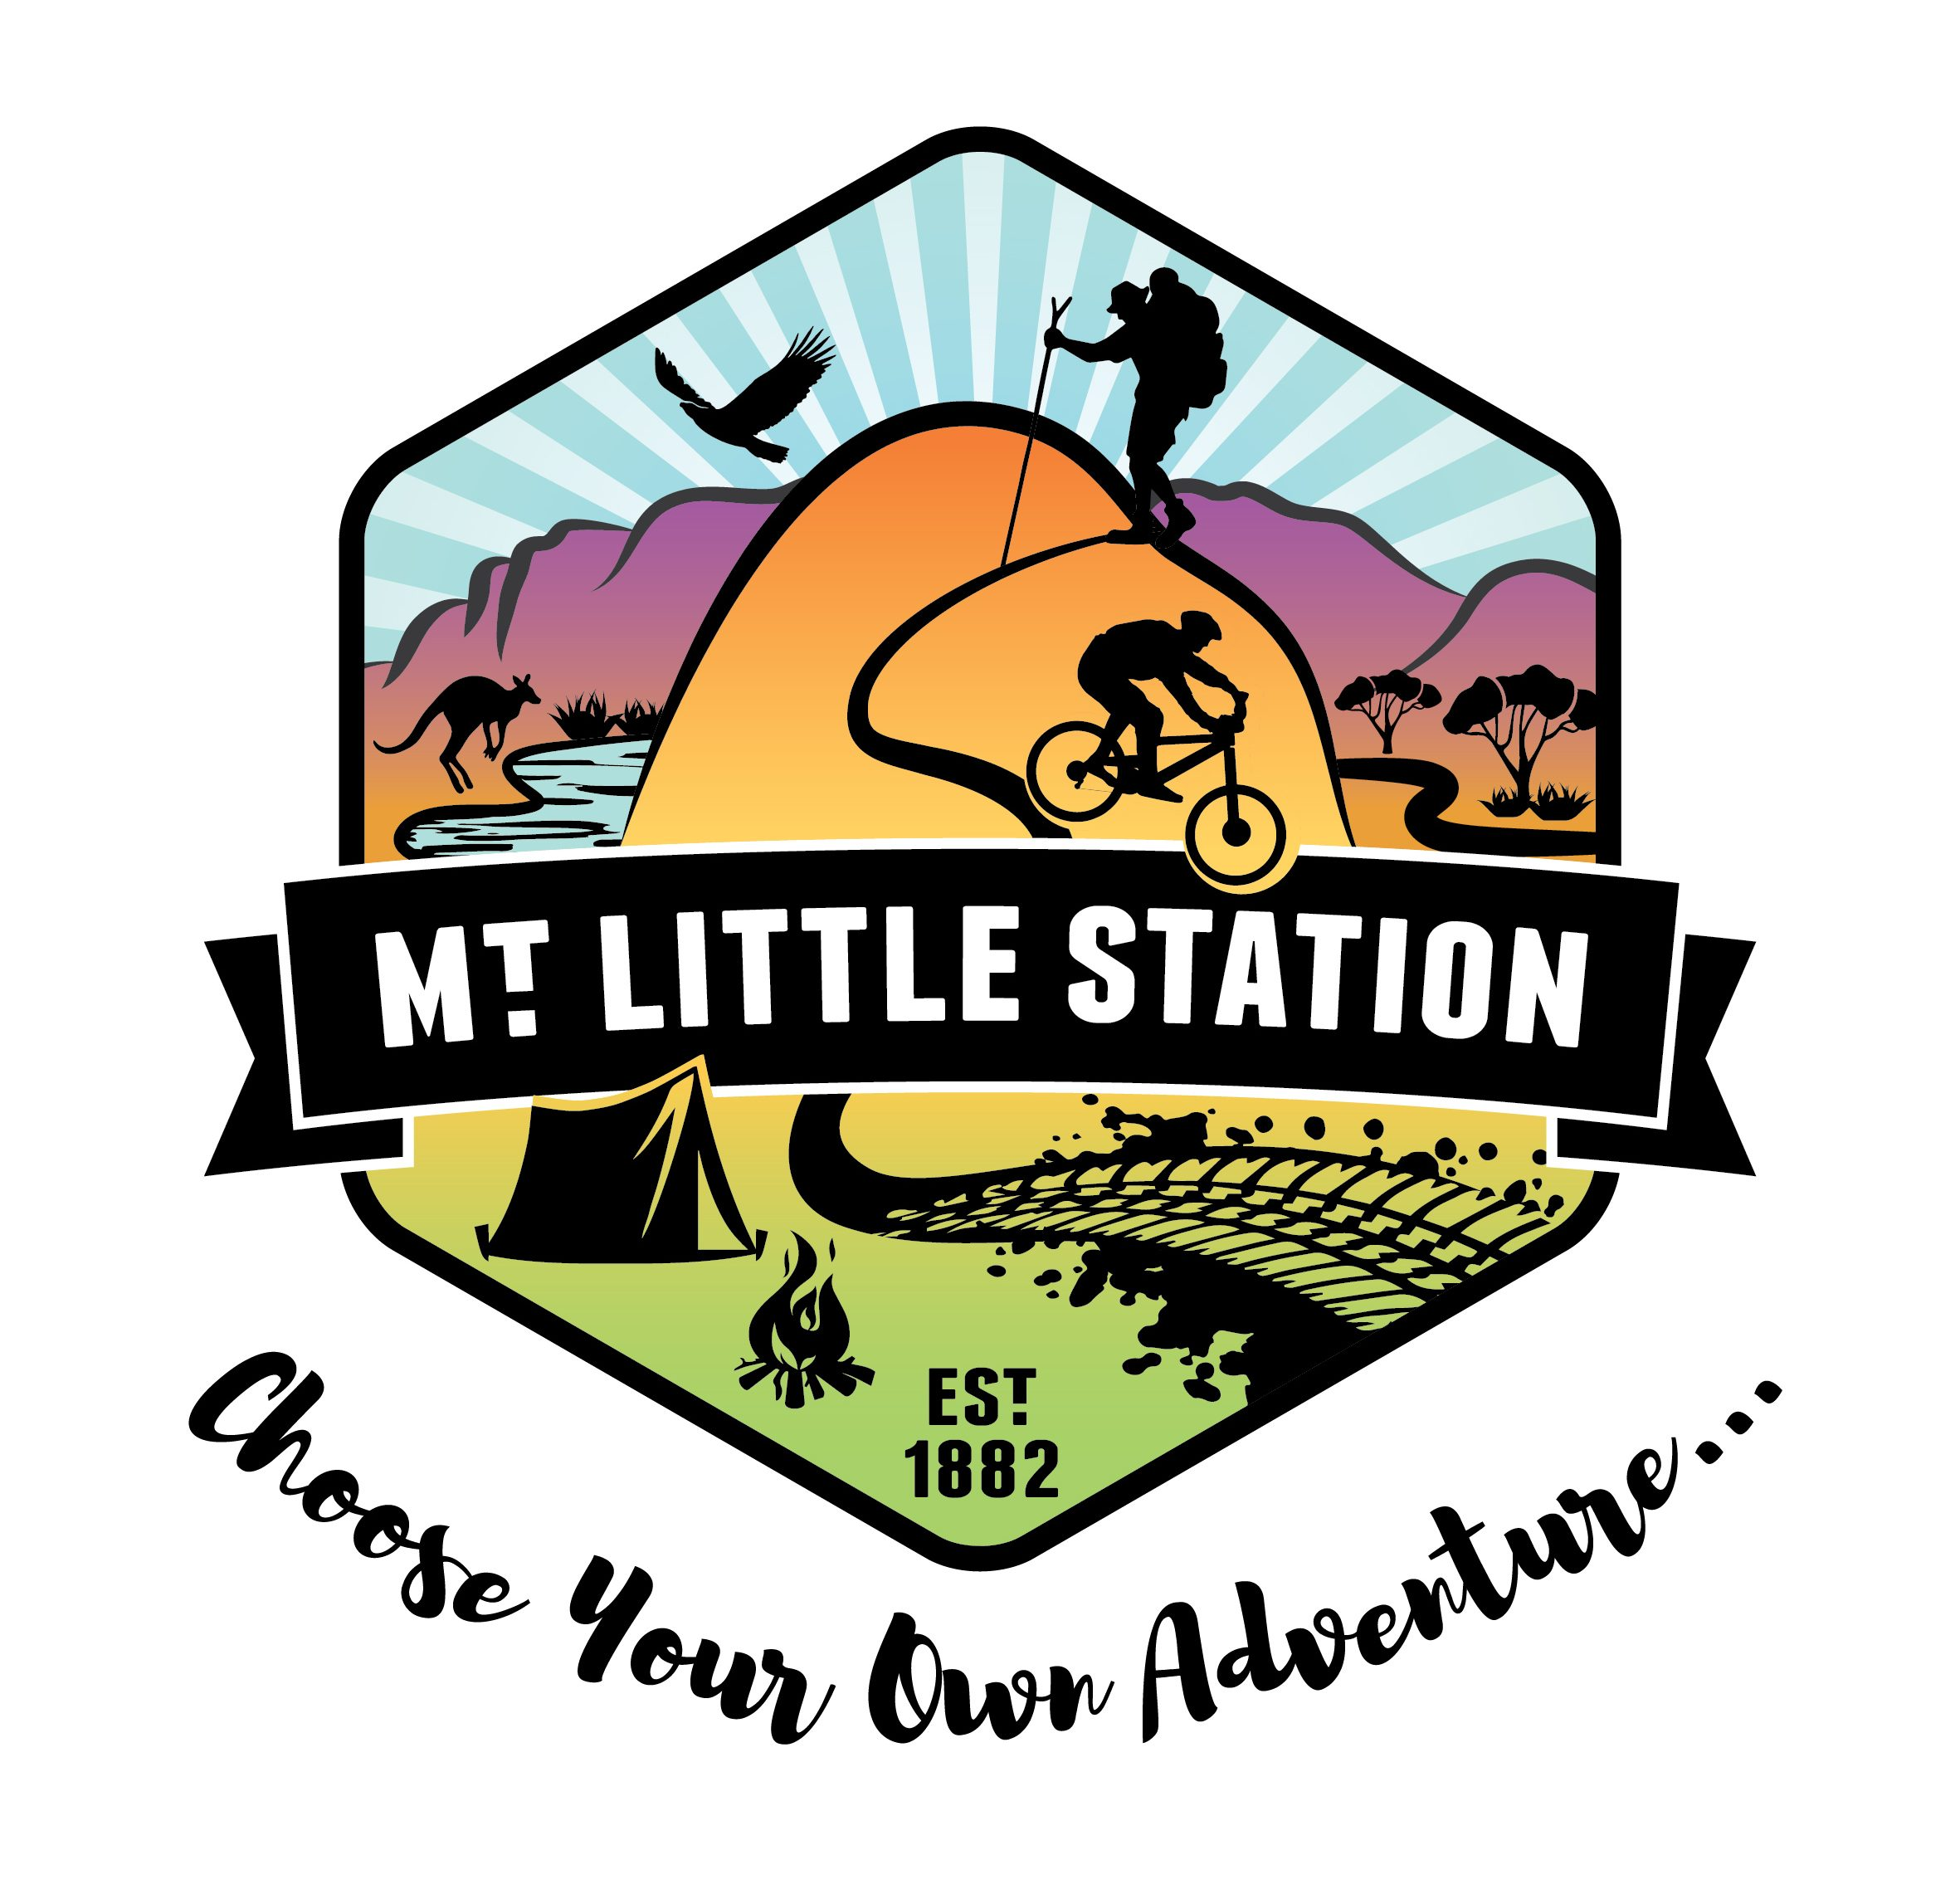 Mount Little Station